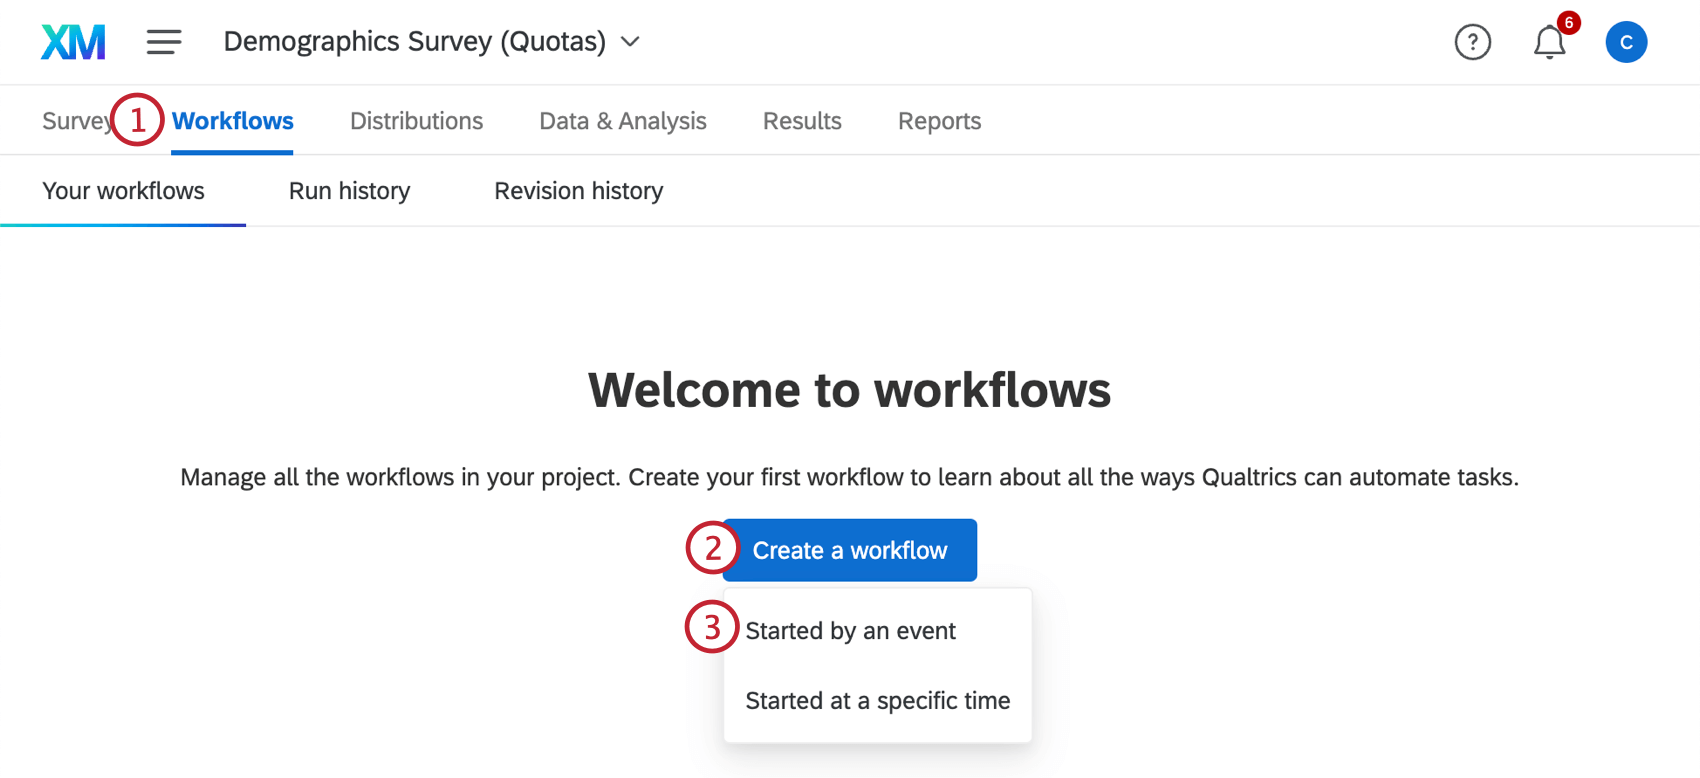 creating a new event based workflow